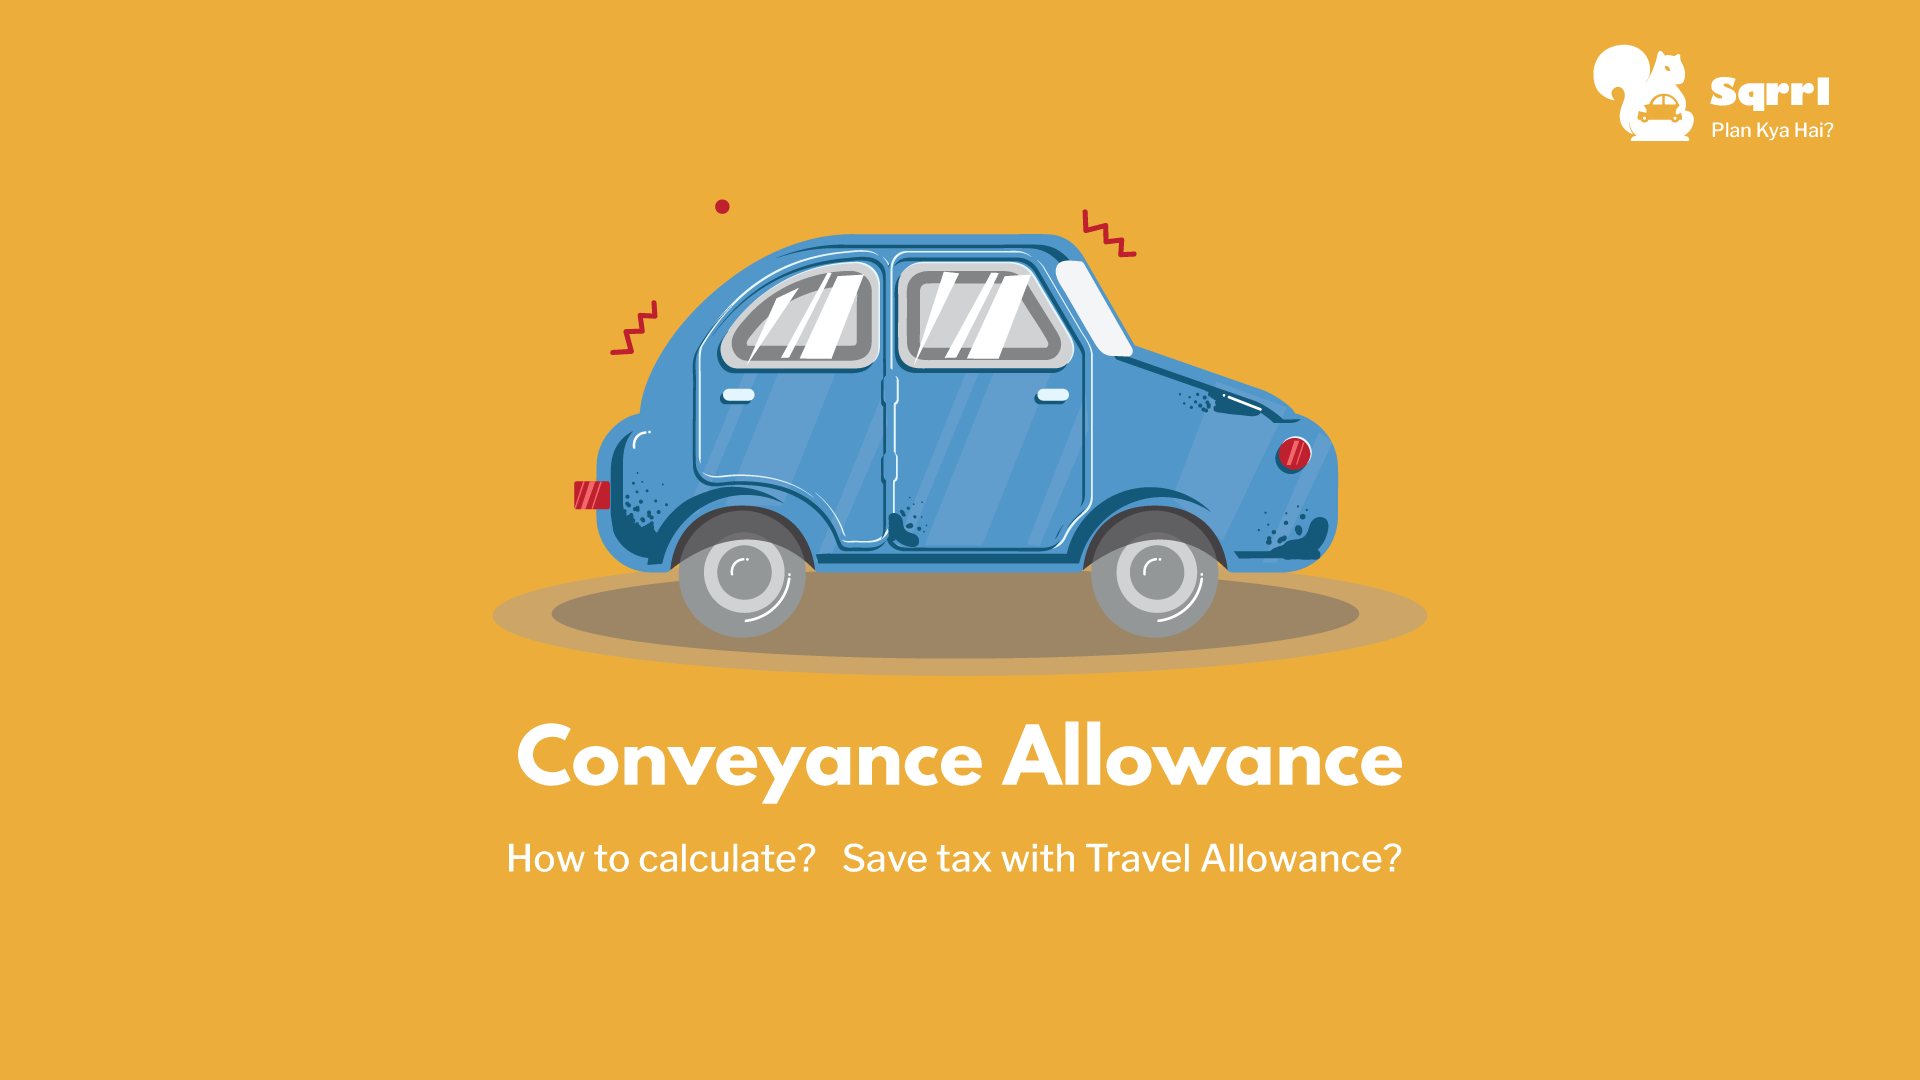 conveyance allowance, how to calculate transport allowance